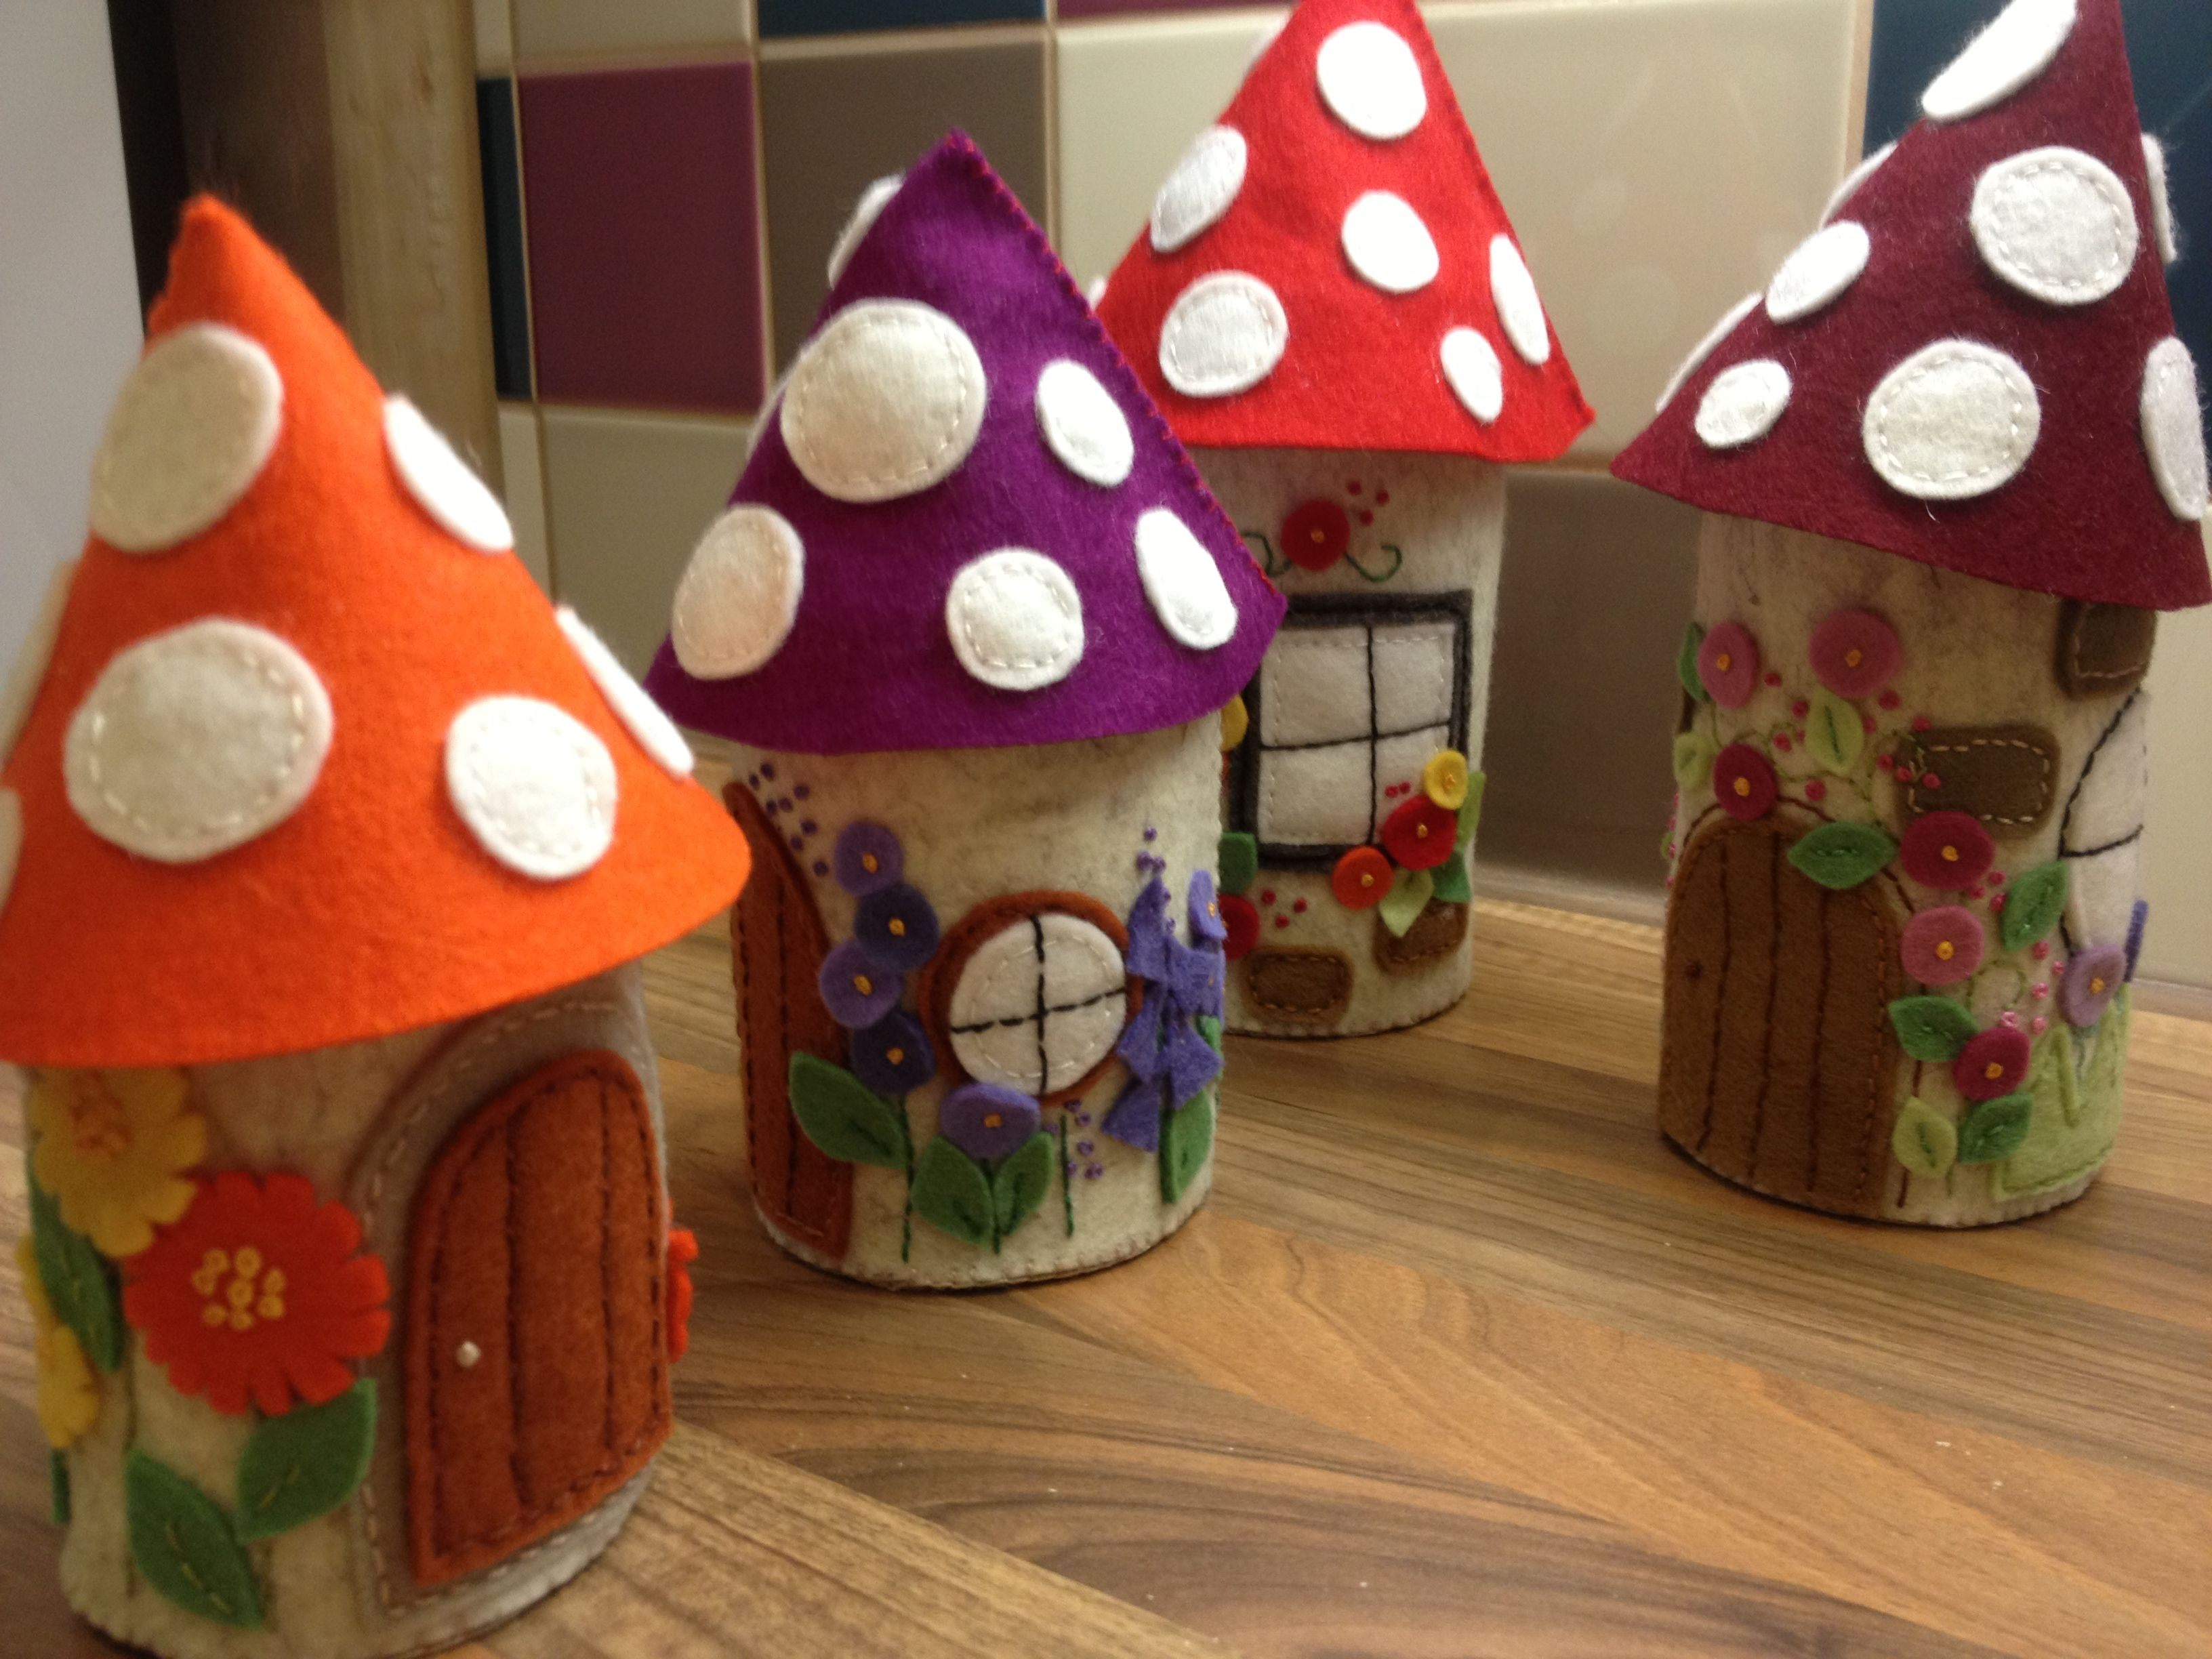 A little village of hand embroidered felt pixie houses in 100% wool felt